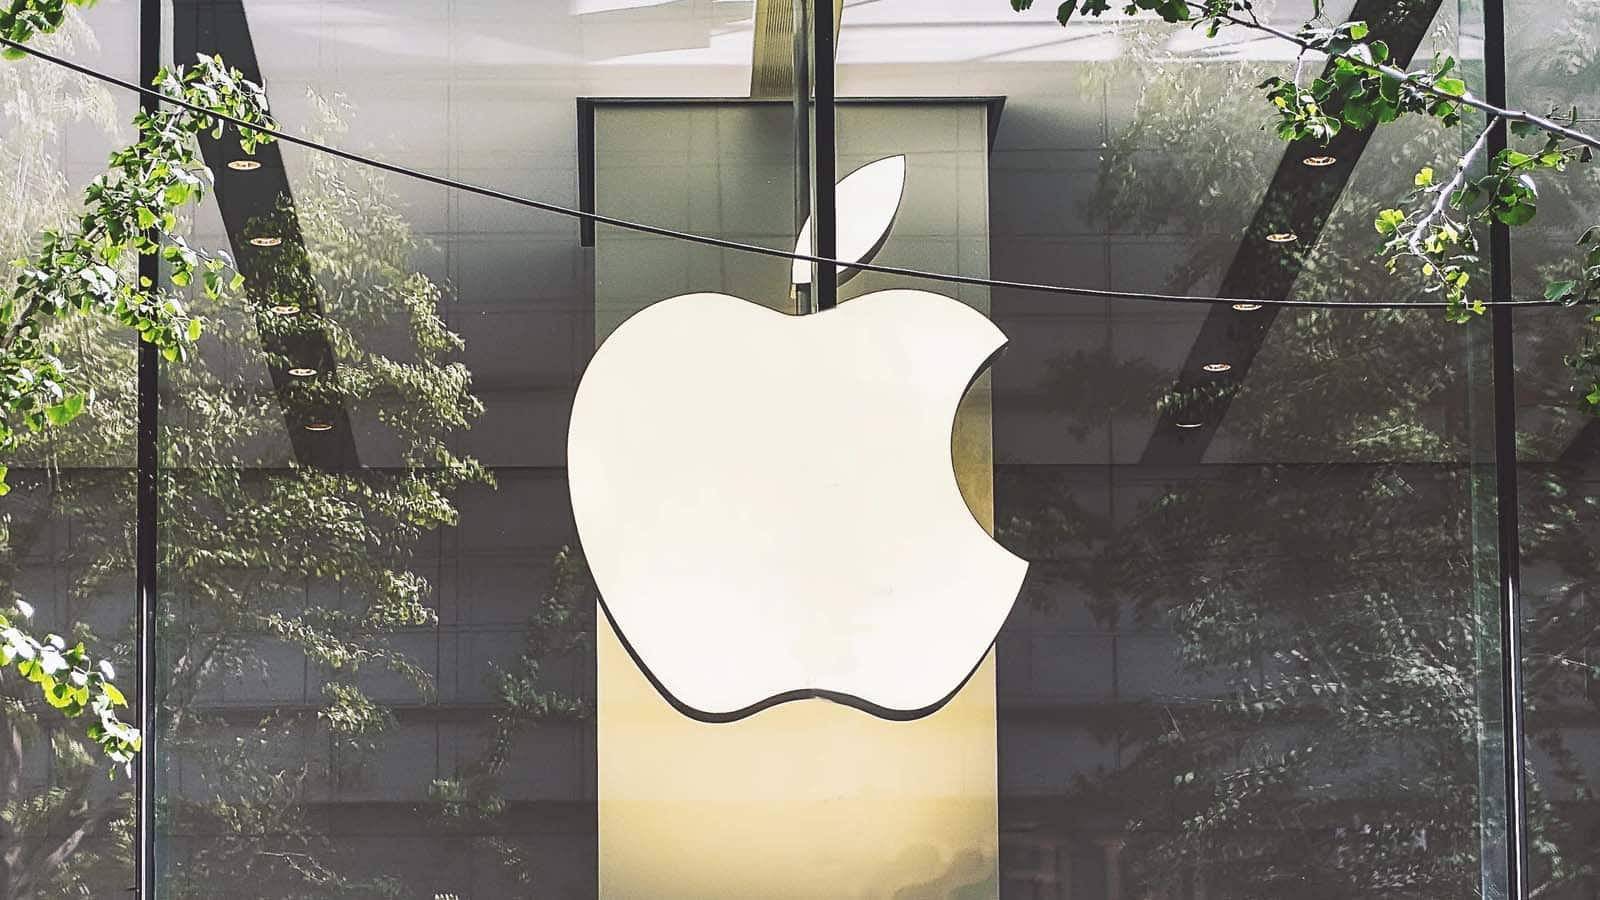 apple logo on glass